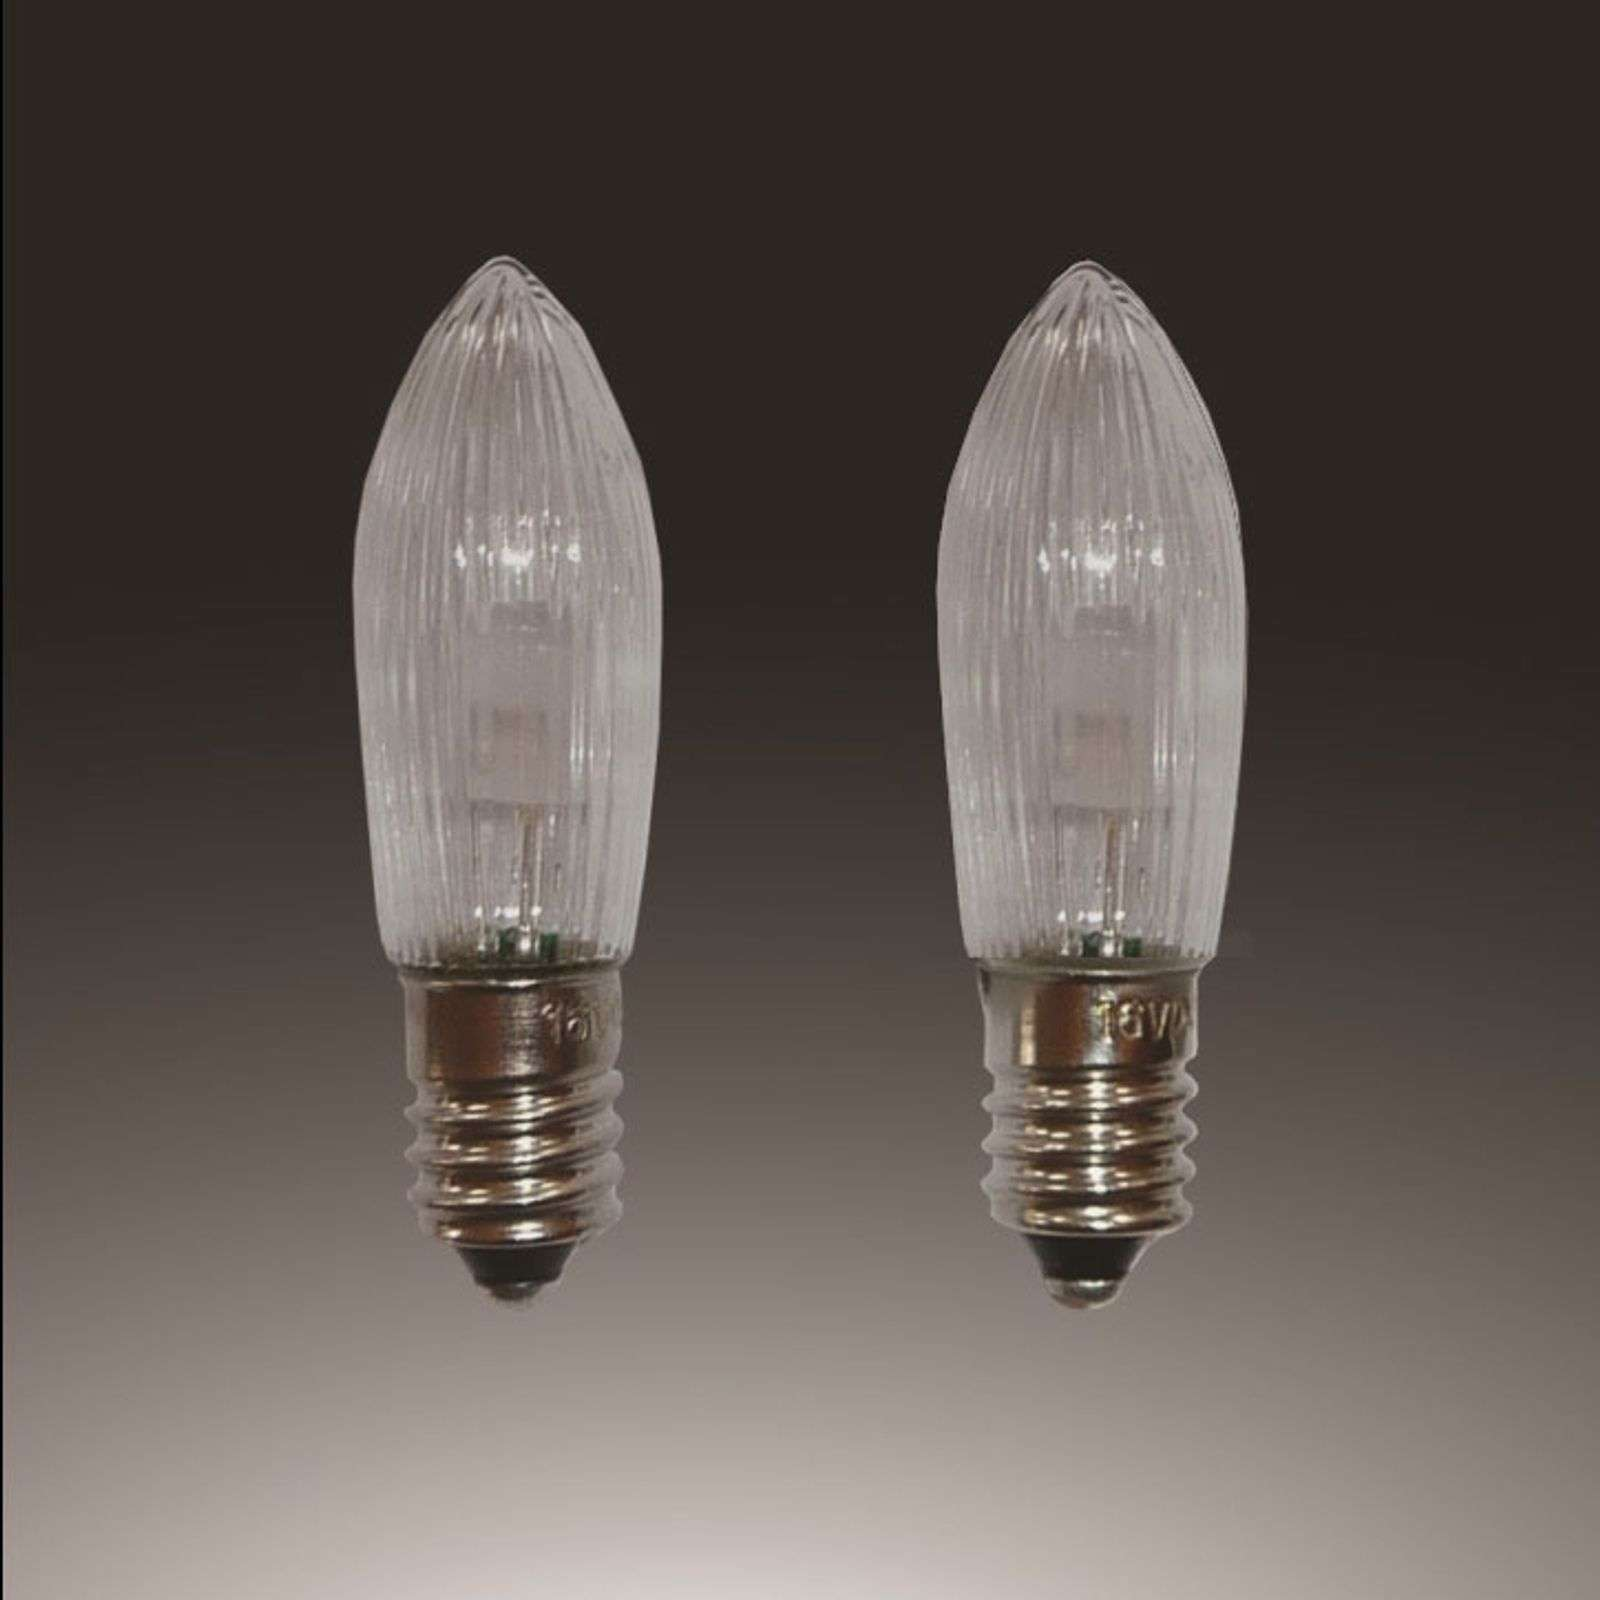 E10 0.1 W 12 V LED spare bulbs, pack of 3, candle thumbnail